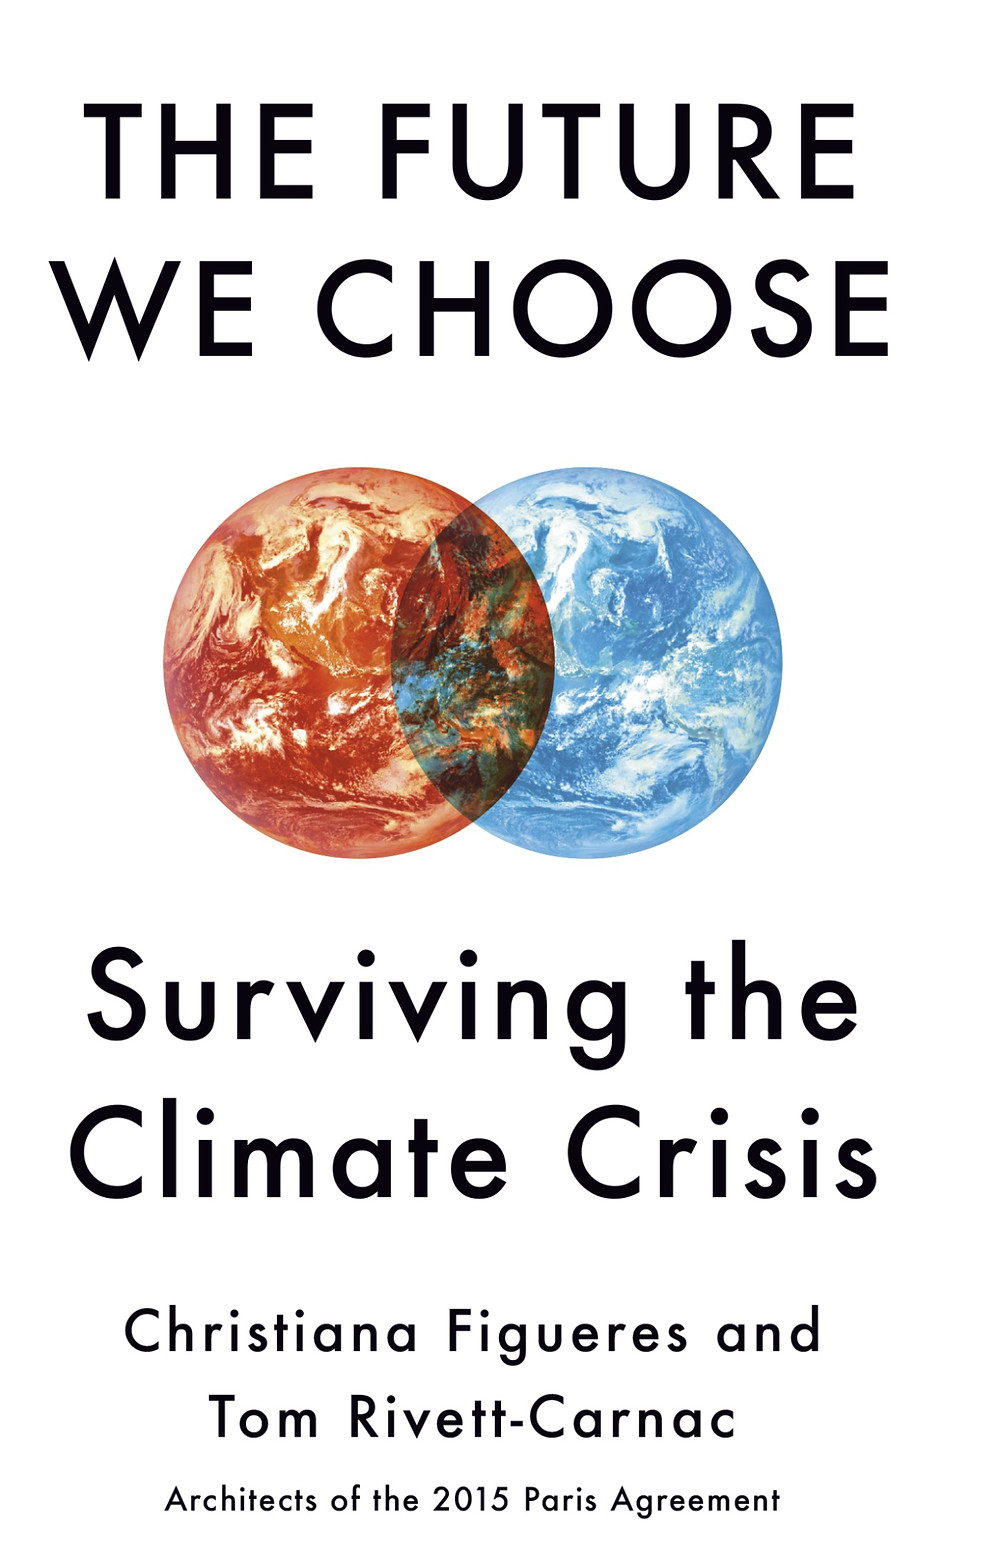 Cover of book: The future we choose: surviving the climate crisis